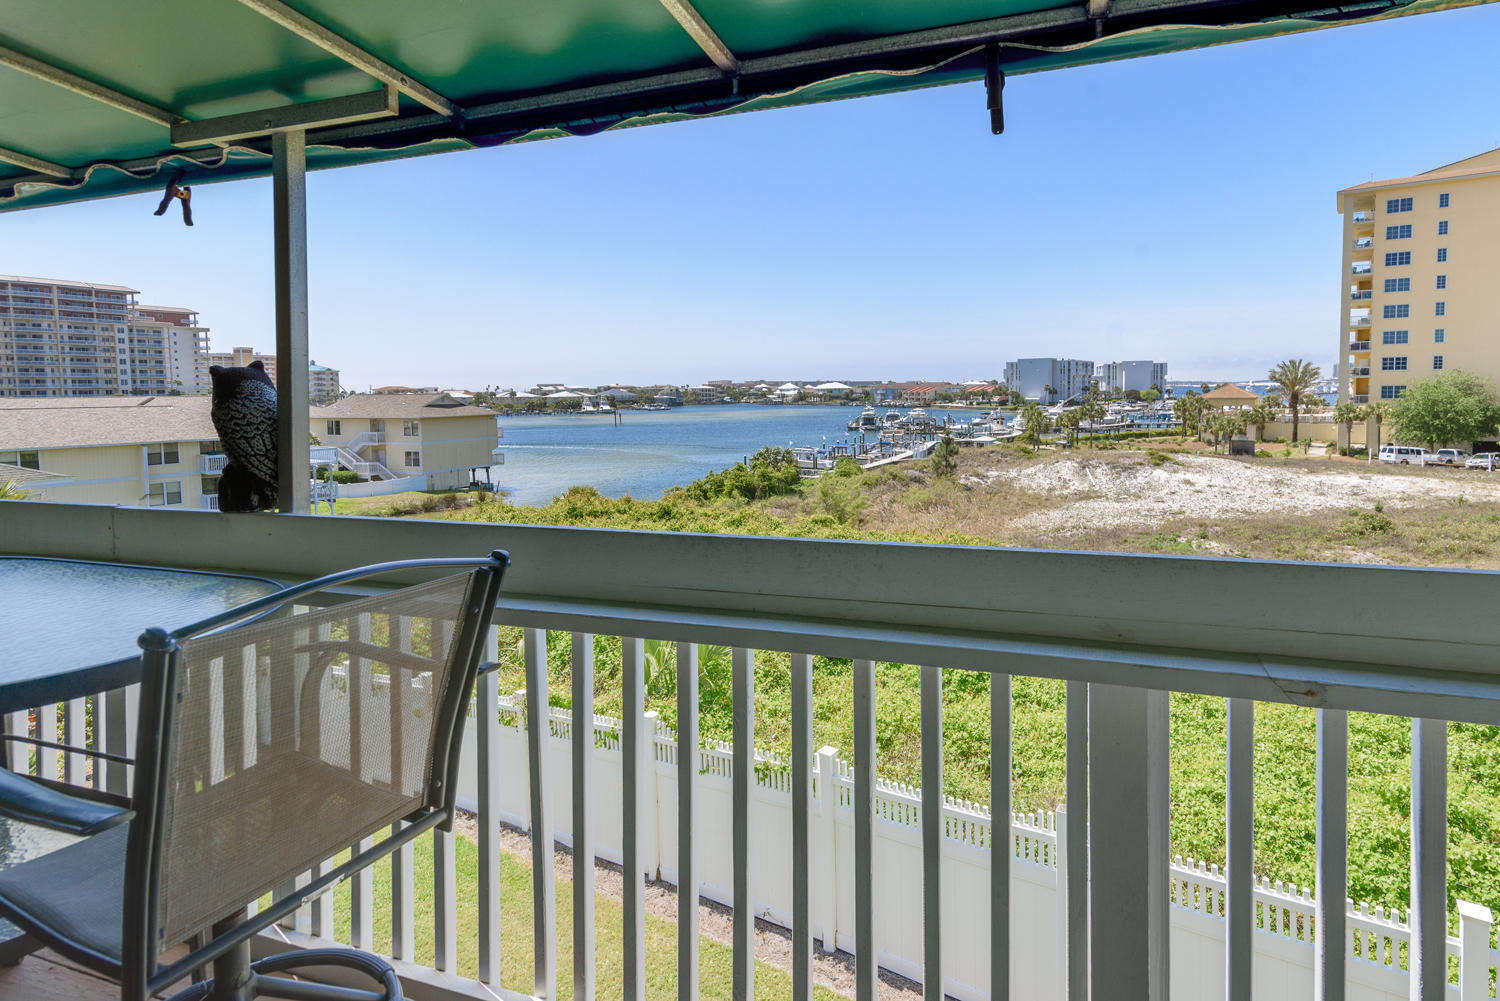 Fabulous Harbor Views! Welcome to Sandpiper Cove, a medium density gated 43 Acre resort in the heart of Destin.  Unit 2019 is an end unit with Fabulous Views Down the Destin Harbor.  Enjoy morning coffee, beautiful sunsets, fireworks(seasonal) and views of the Destin Harbor from your expanded covered balcony. The balcony has been extended out 8 feet and covered with a canvas awning.   This unit is a fully furnished 1 bedroom, 1 bath unit with a queen bed and queen sofa. The unit features: Granite bathroom vanities, Flat Screen TV's in the living room and bedroom, tiled bathroom, kitchen and foyer floors, Carpet in the living and bedroom, fully equipped kitchen and a stack washer and dryer.  The unit has a small storage closet before entering the unit and hurricane shutters for the balcony windows.   Units 2019 and unit 2020 are one bedroom, second floor unit's side by side overlooking the Destin Harbor.  The units can be combined with an adjoining door to make a 2 bedroom, 2 bath unit.   Unit 2019 can be purchased separately or both units purchased together. This unit is just steps to the pool and in walking distance to 1100 feet of private white sandy beaches. Sandpiper cove amenities include 5 pools (2 heated), 6 tennis courts, a harbor front marina, boat ramp, and a nine-hole par 3 pitch and putt golf course. The  beach pavilion is home to Rick's Sandtrap serving great food and drinks.  There are also his and hers bathroom facilities with outside side showers to rinse off.  Louisiana Lagniappe Restaurant is on property with views of the Harbor and Sunset.  The seasonal water taxi will pick you up at the marina dock and drop you off anywhere on the harbor. The resort is conveniently located to nearby Destin area shopping, restaurants, and many other local area attractions.   Located in an X Flood Zone